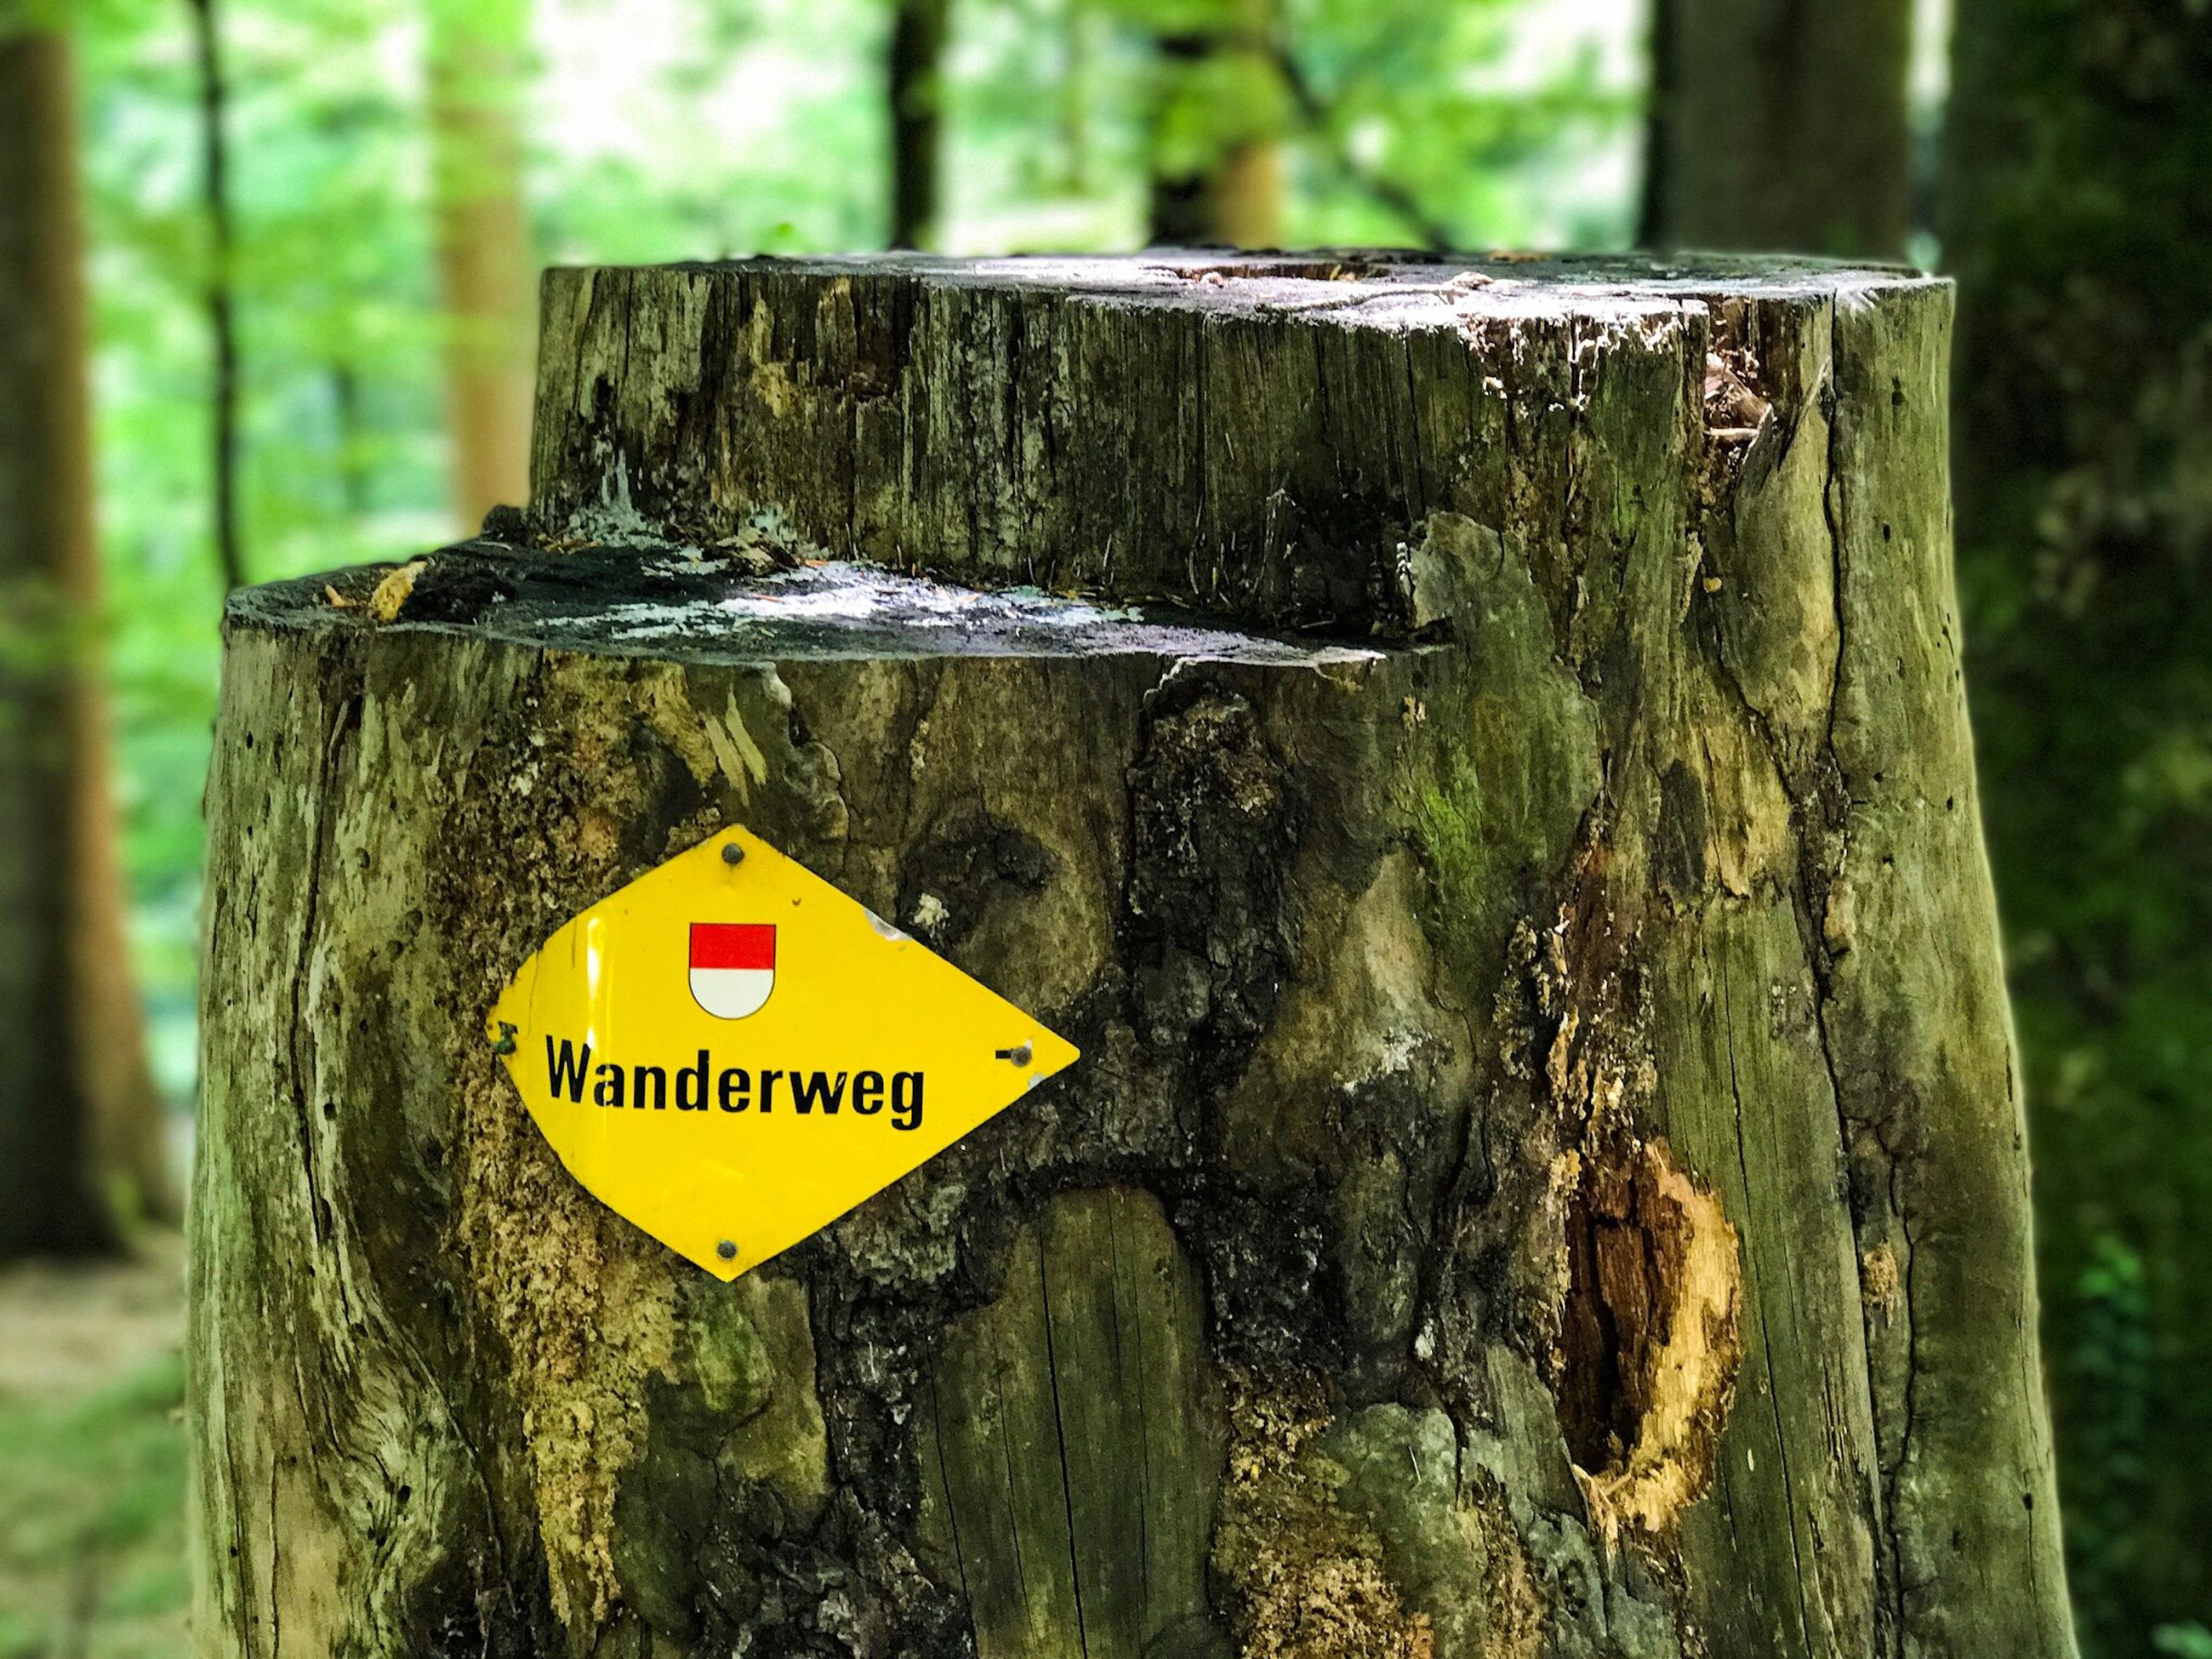 tree trunk, tree, text, yellow, day, communication, focus on foreground, textured, warning sign, no people, wood - material, outdoors, close-up, nature